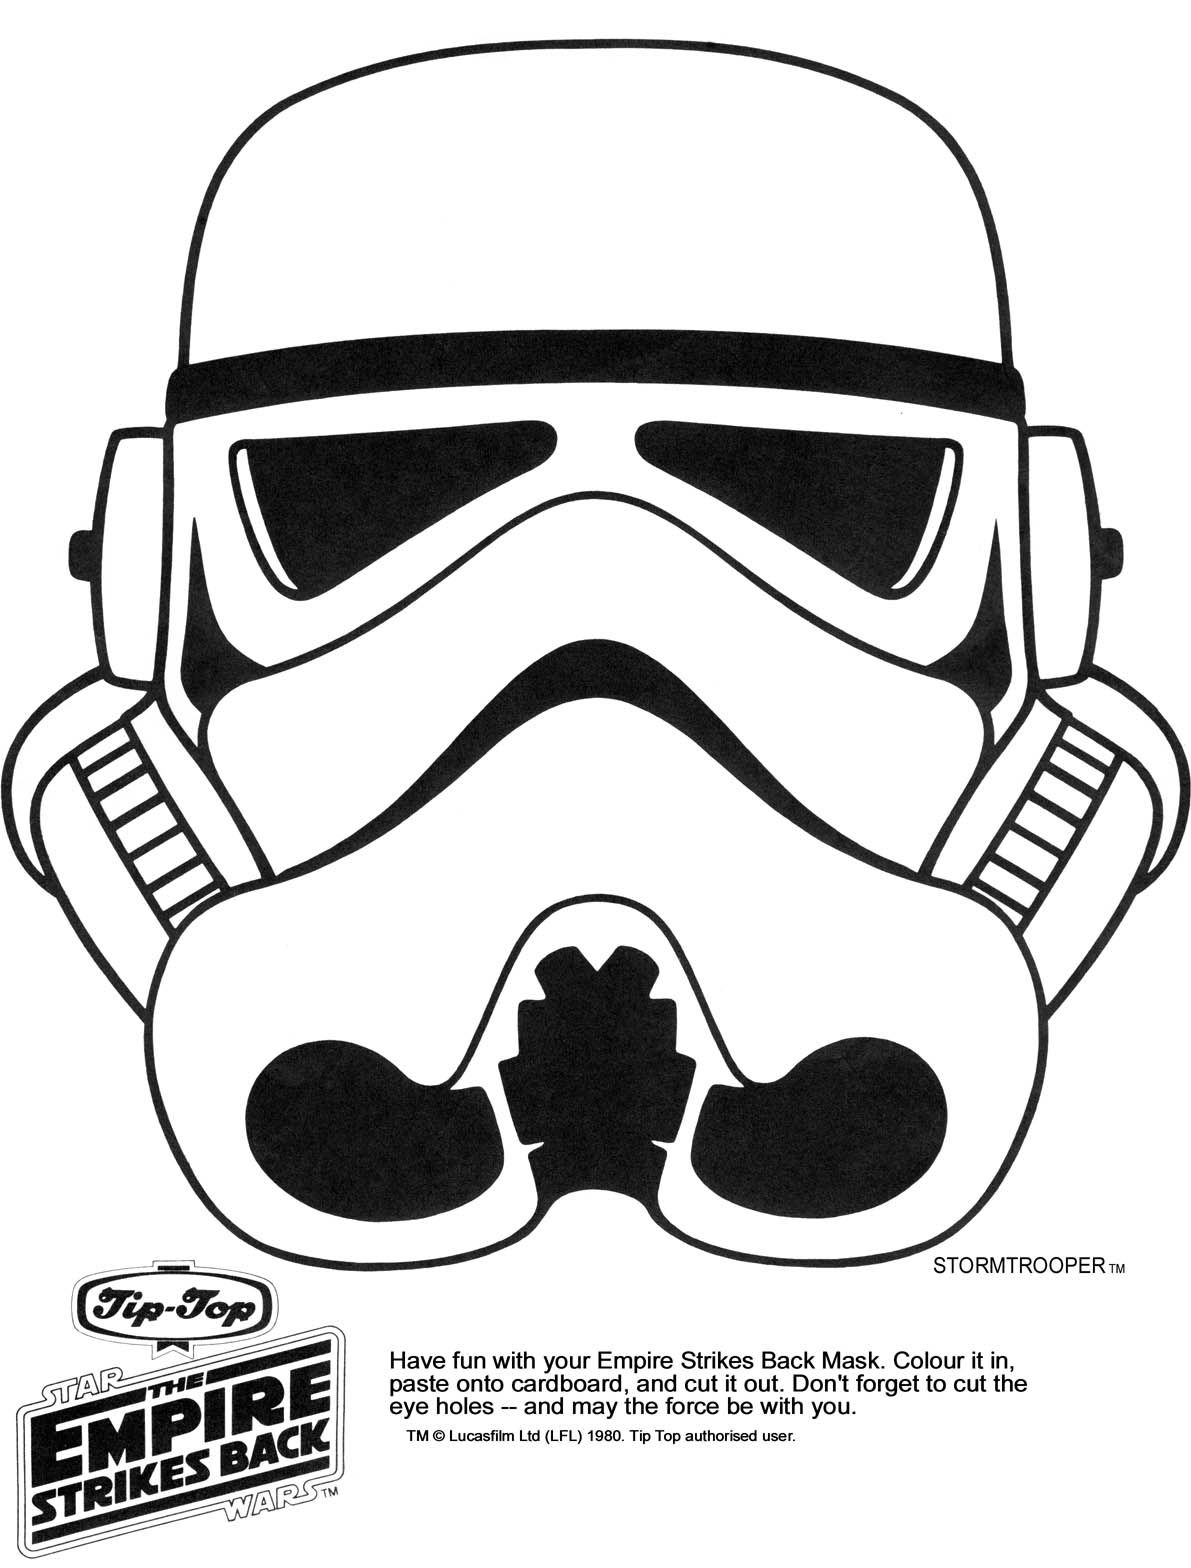 picture regarding Stormtrooper Printable named Star Wars Halloween Templates Click on the imagine for the